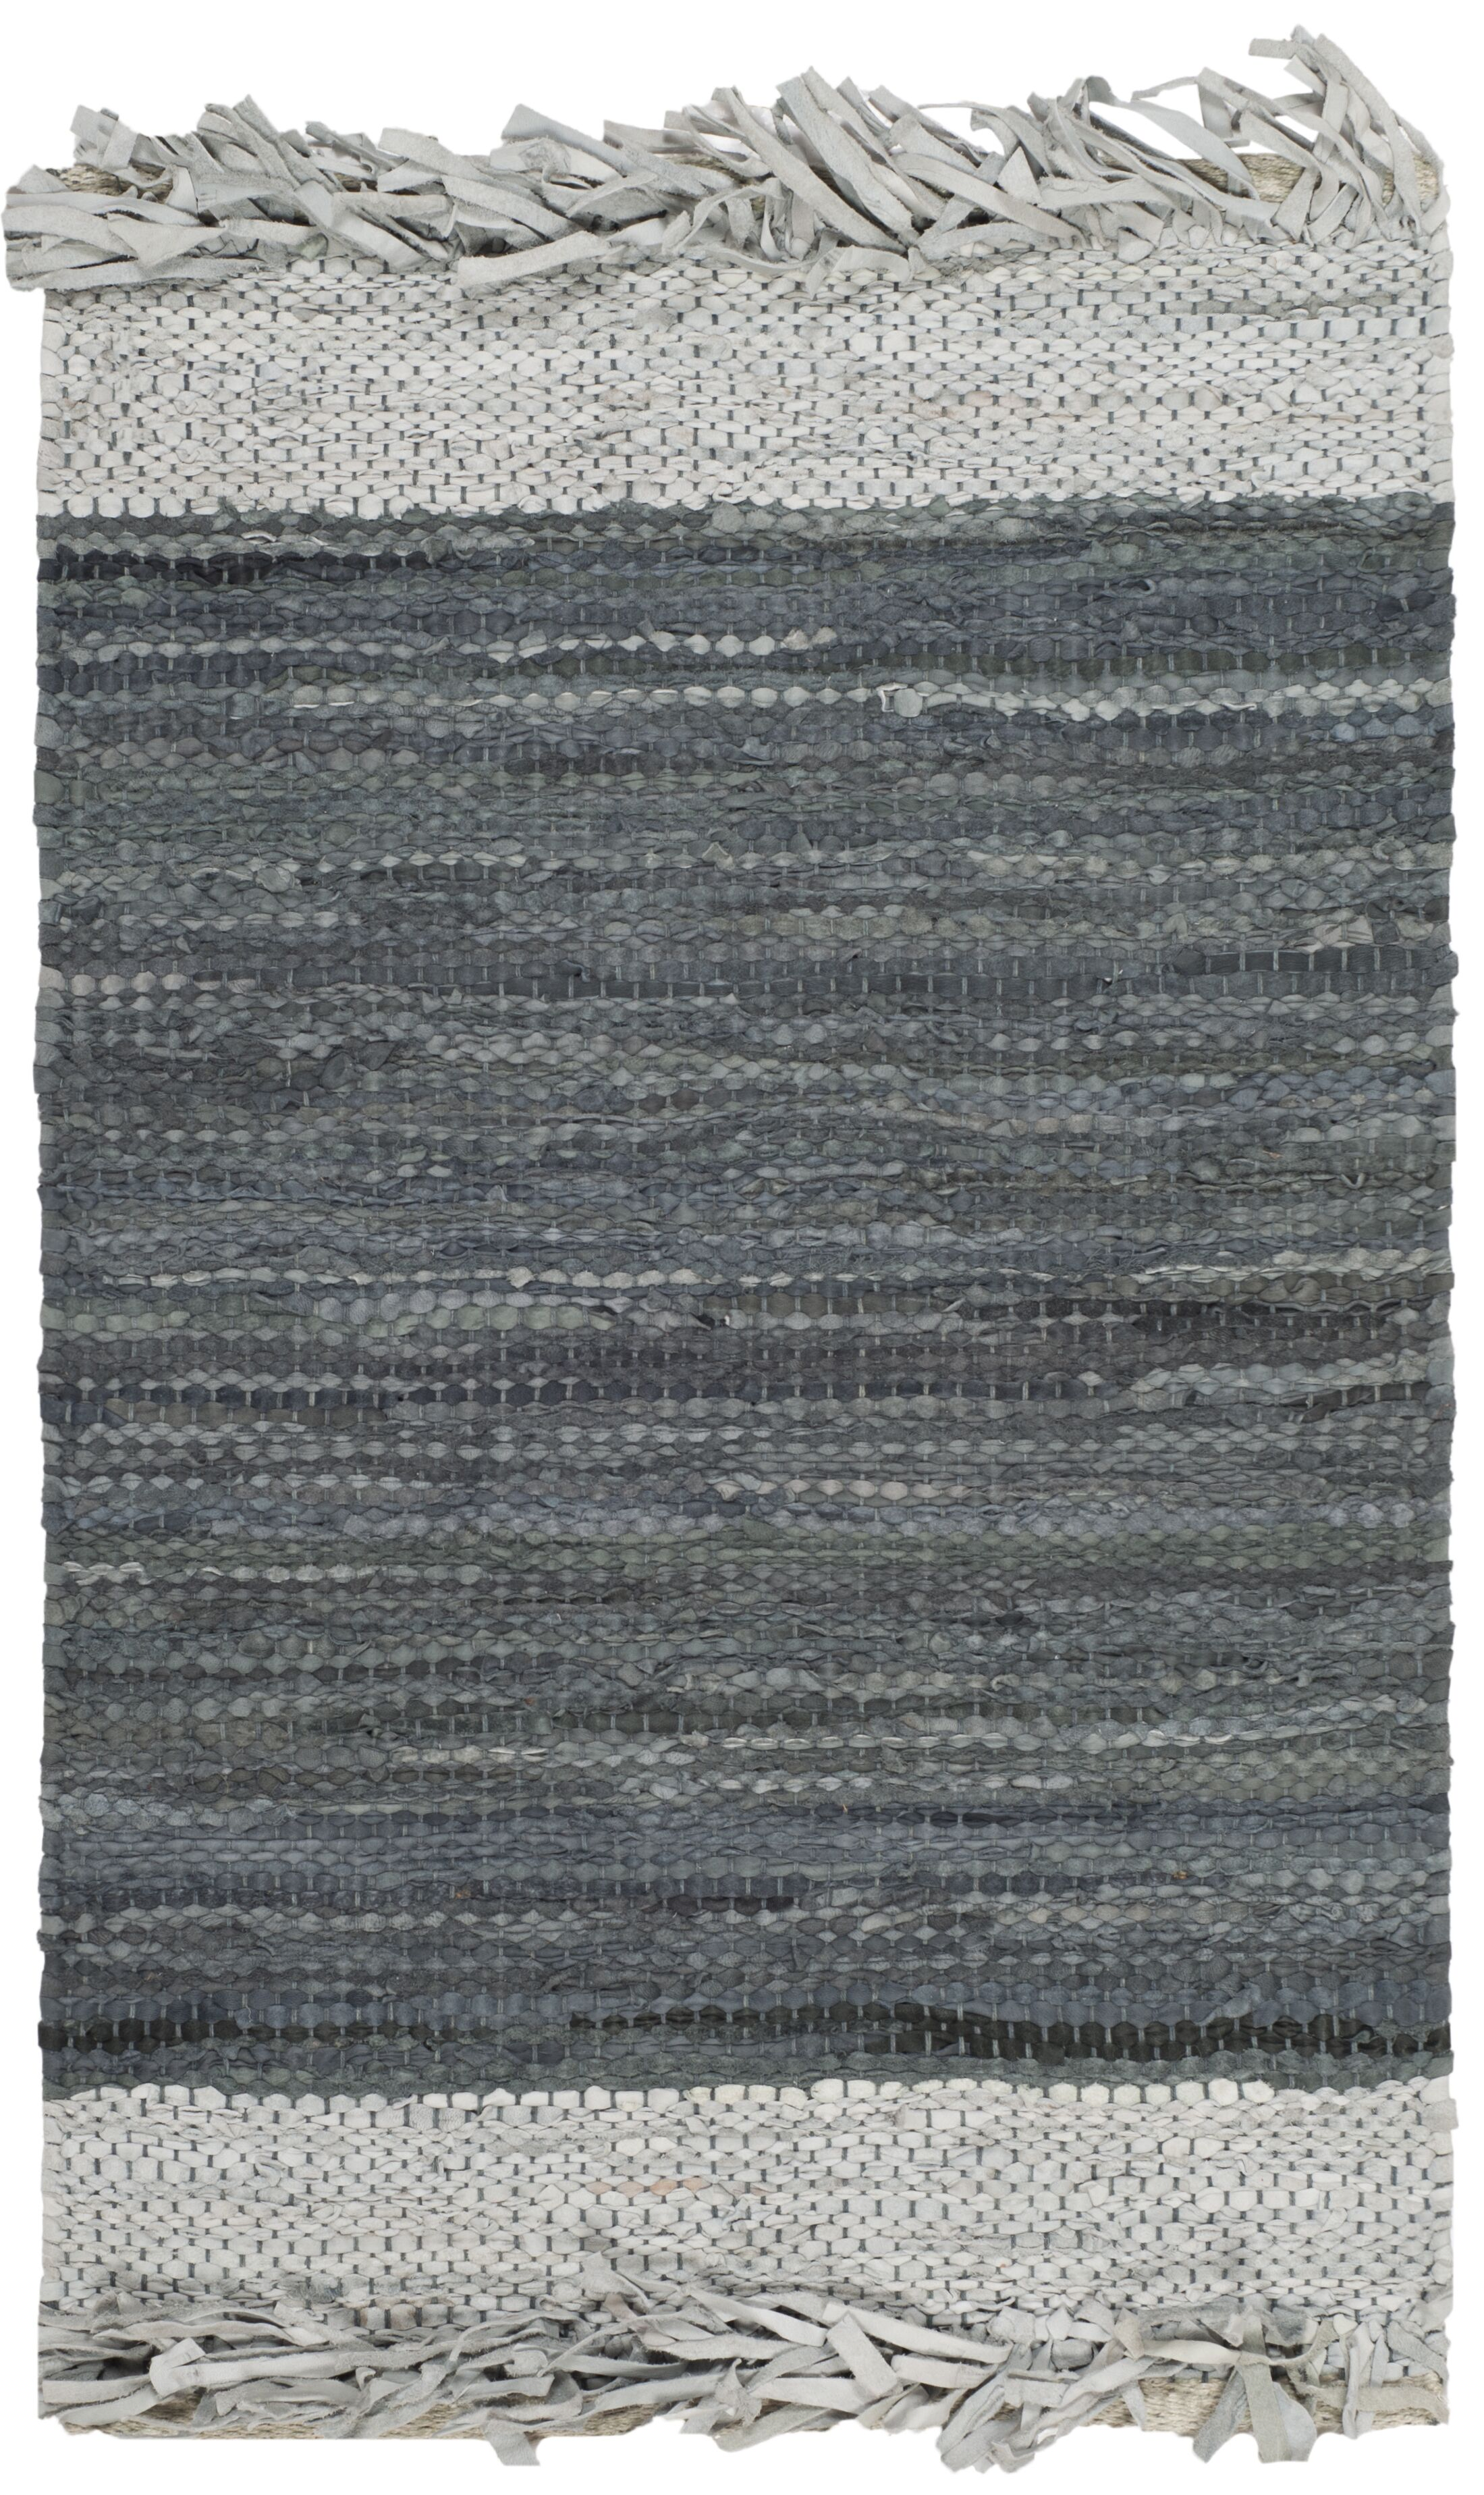 Glostrup Hand Knotted Light Gray Area Rug Rug Size: Rectangle 5' x 8'